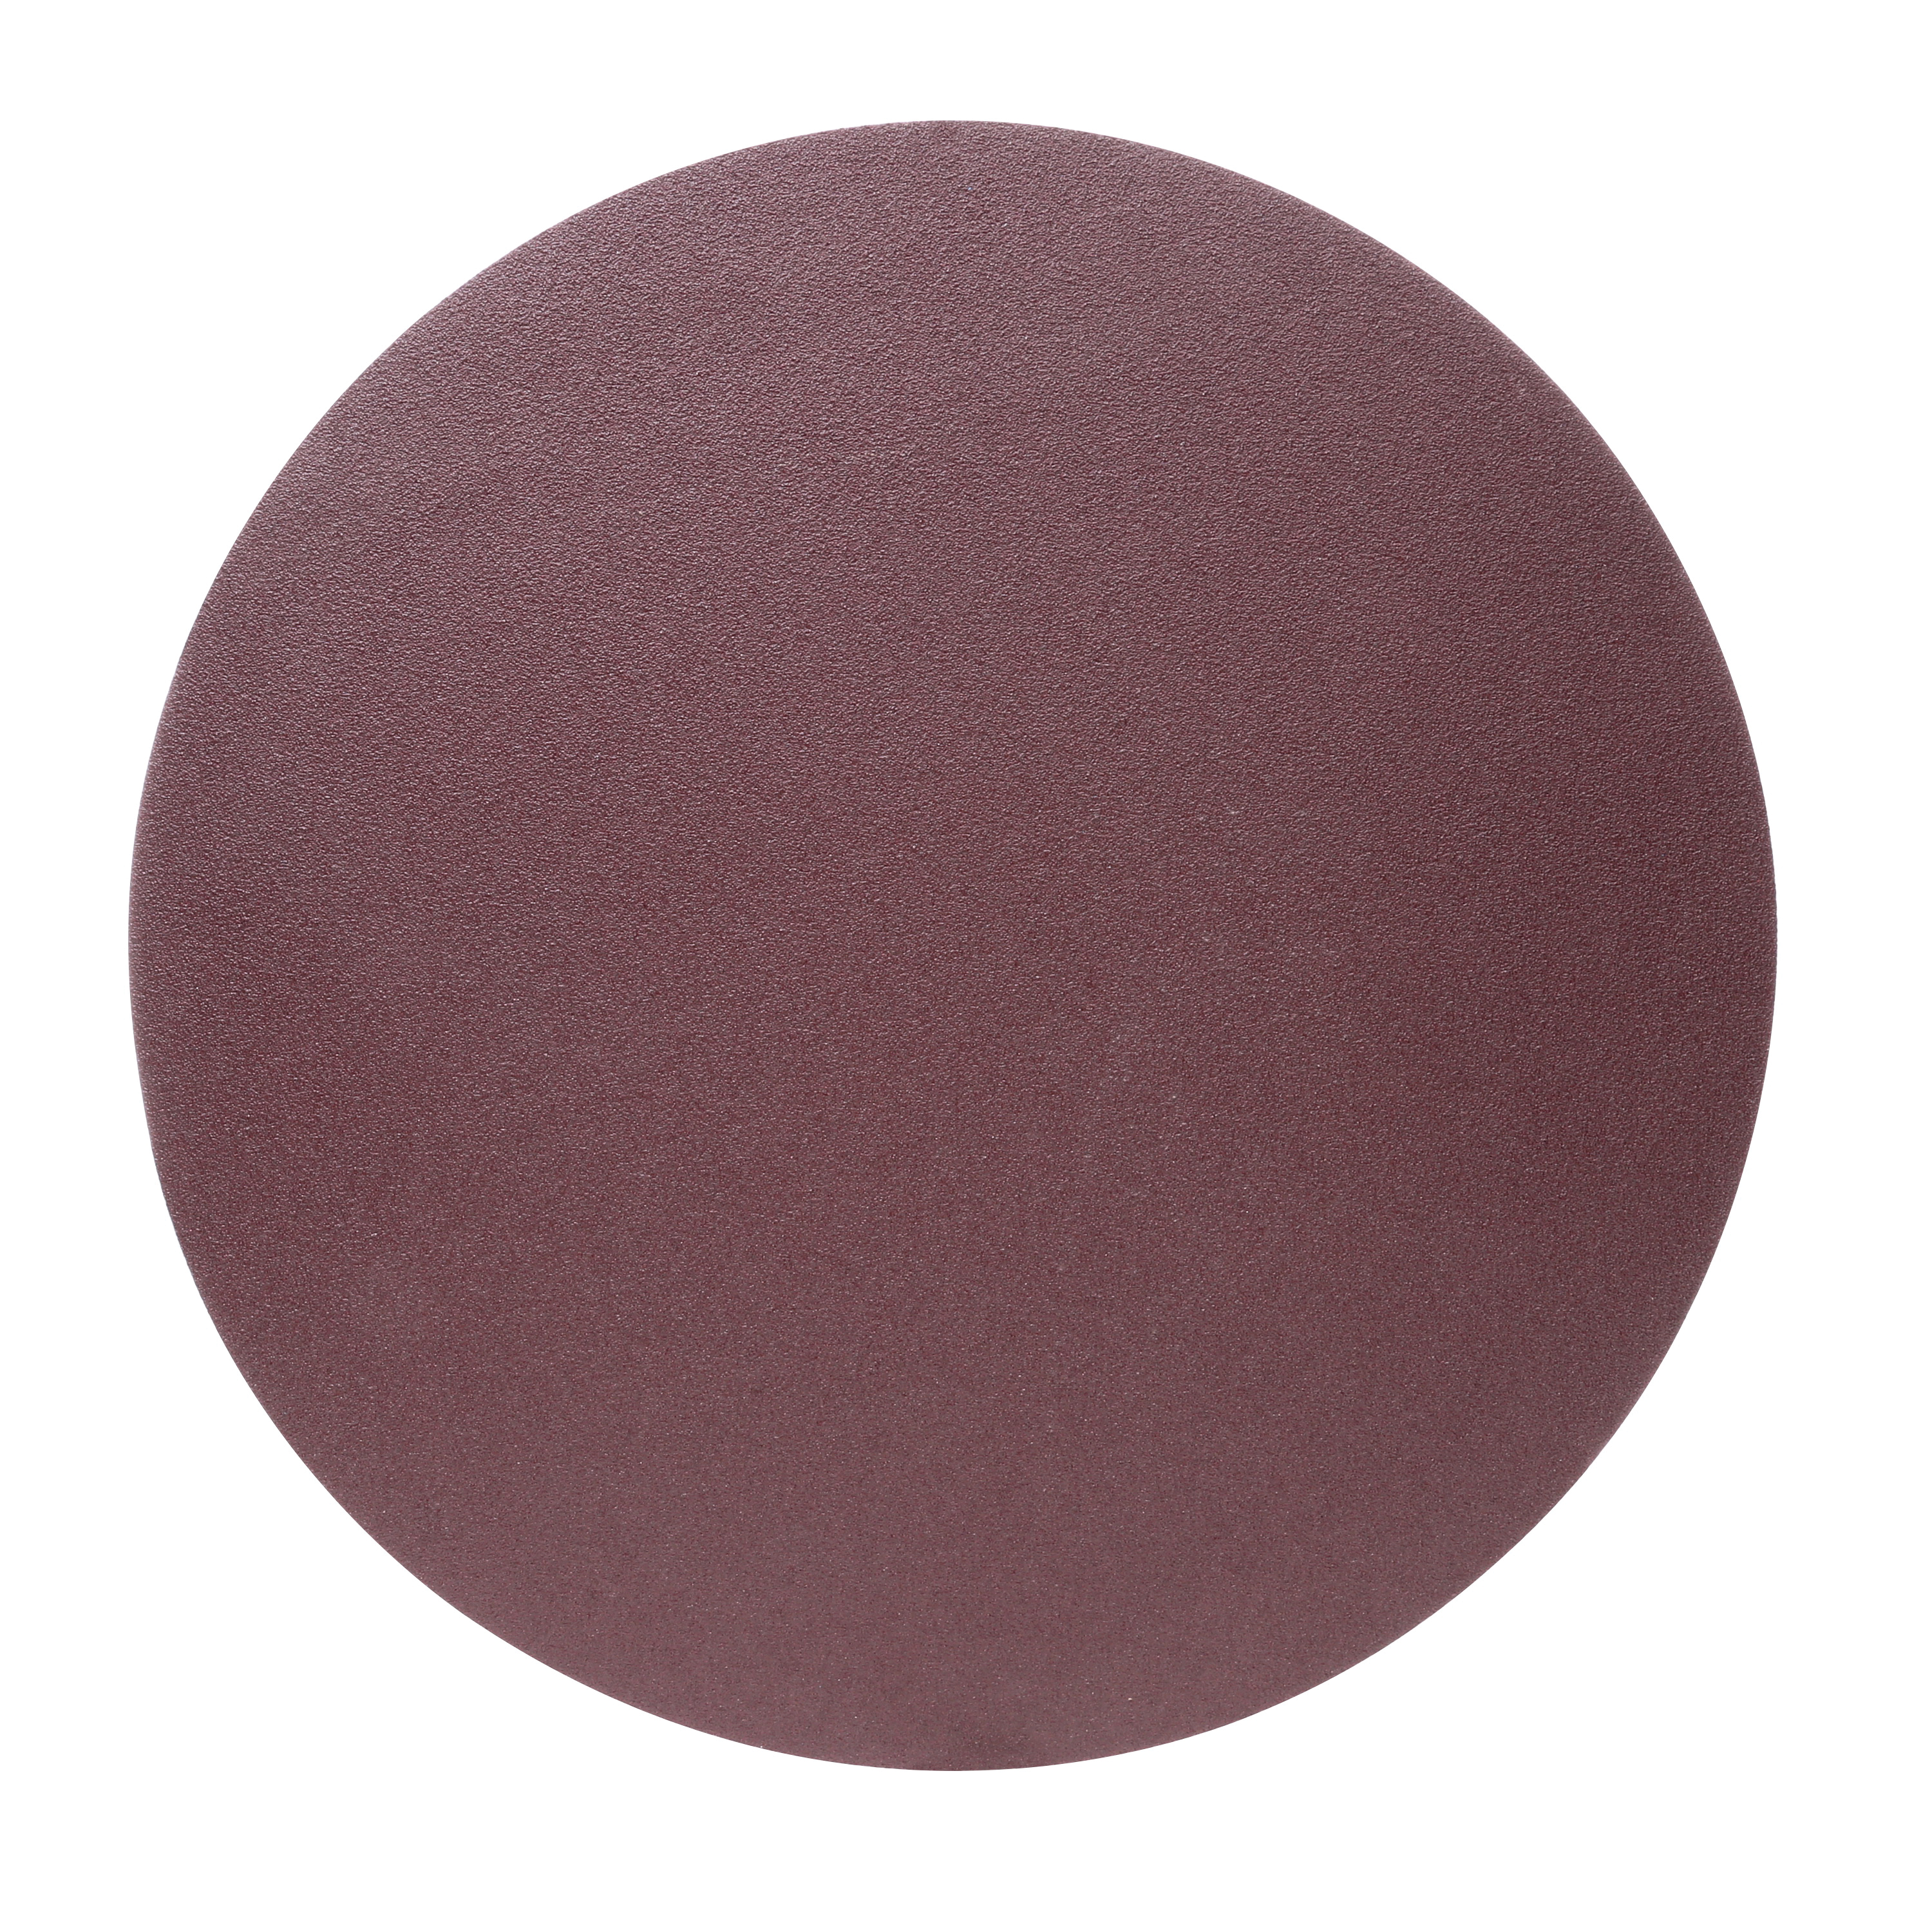 3M™ 051144-88880 Heavy Duty PSA Close Coated Abrasive Disc, 18 in Dia, 60 Grit, Medium Grade, Aluminum Oxide Abrasive, Cloth Backing